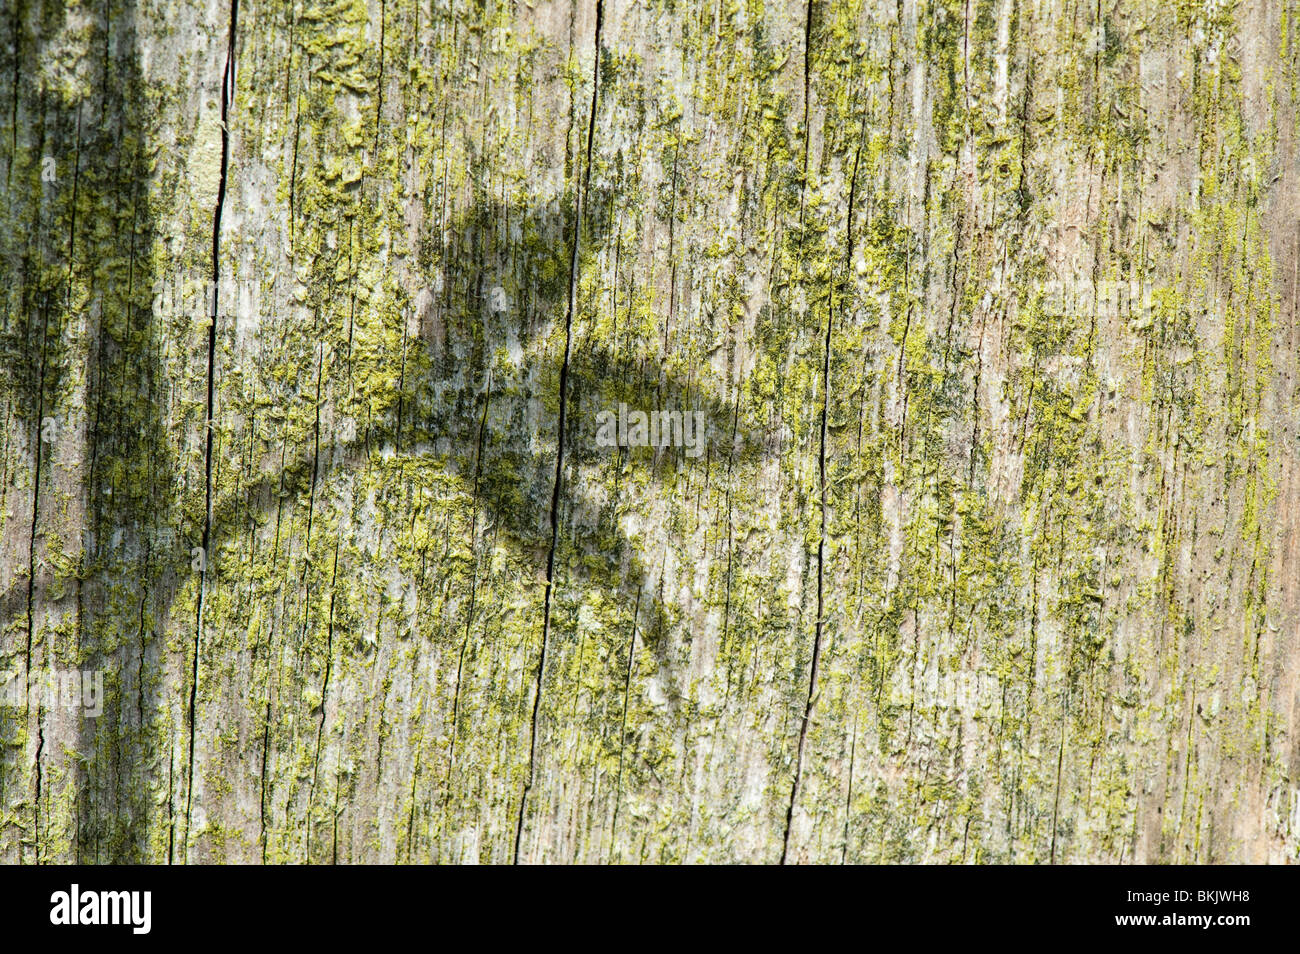 Sunlight casting a plant leaf shadow on an old wooden post in a garden - Stock Image